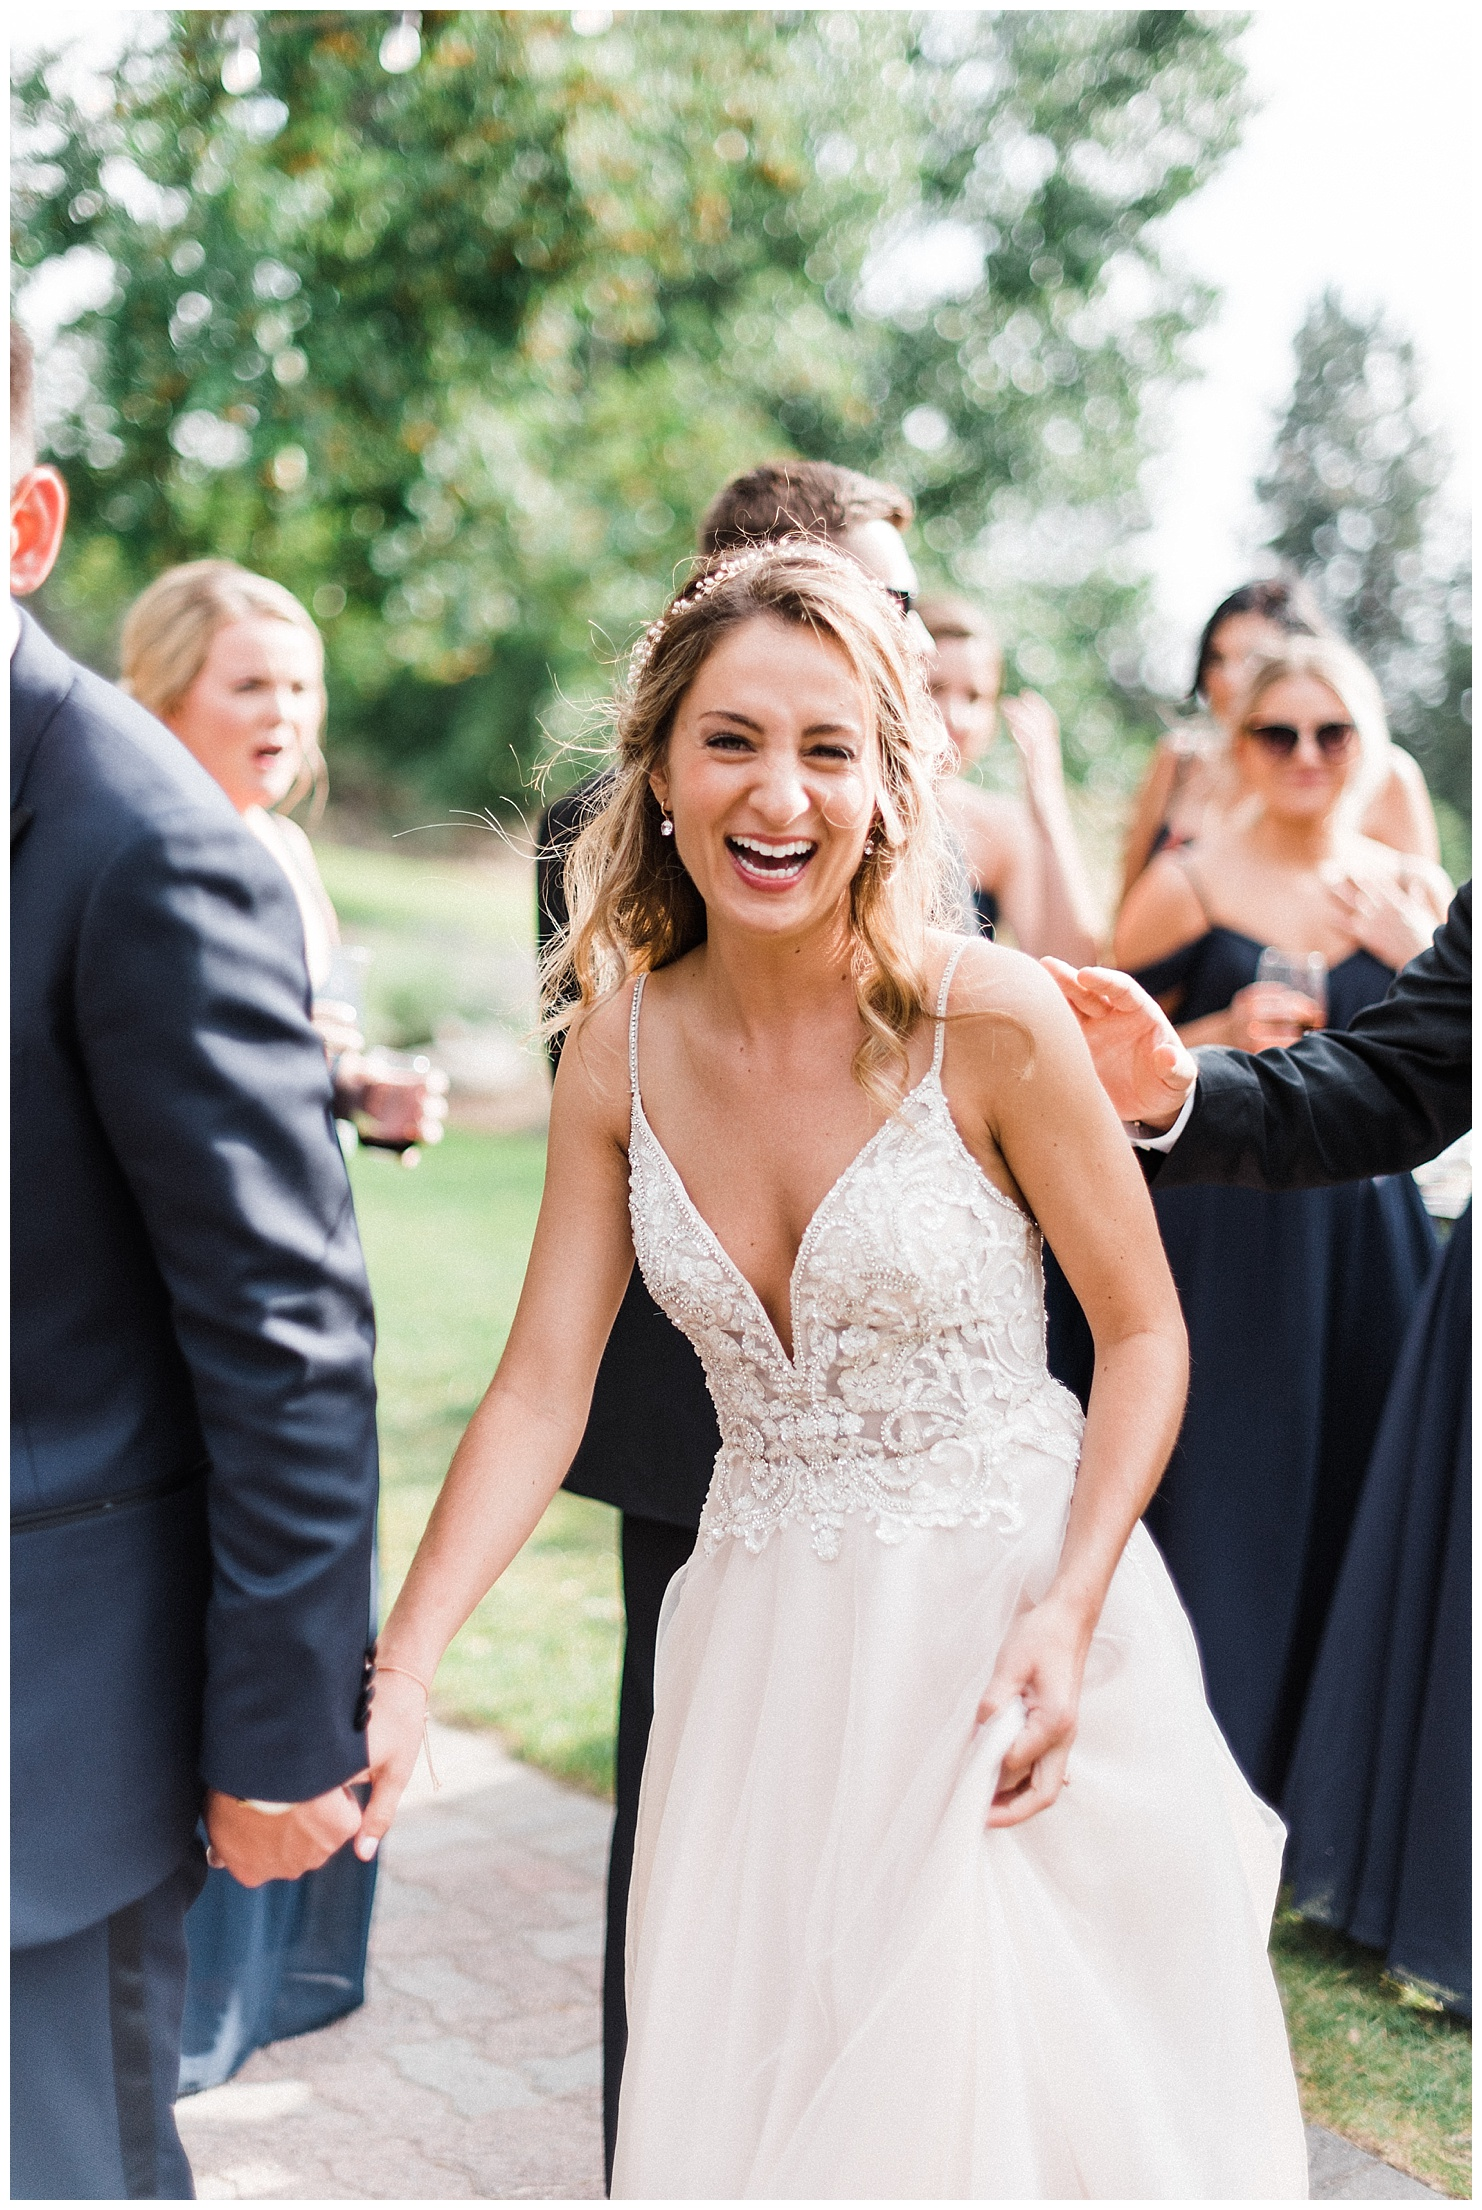 Photo of a bride laughing by Forthright Photo